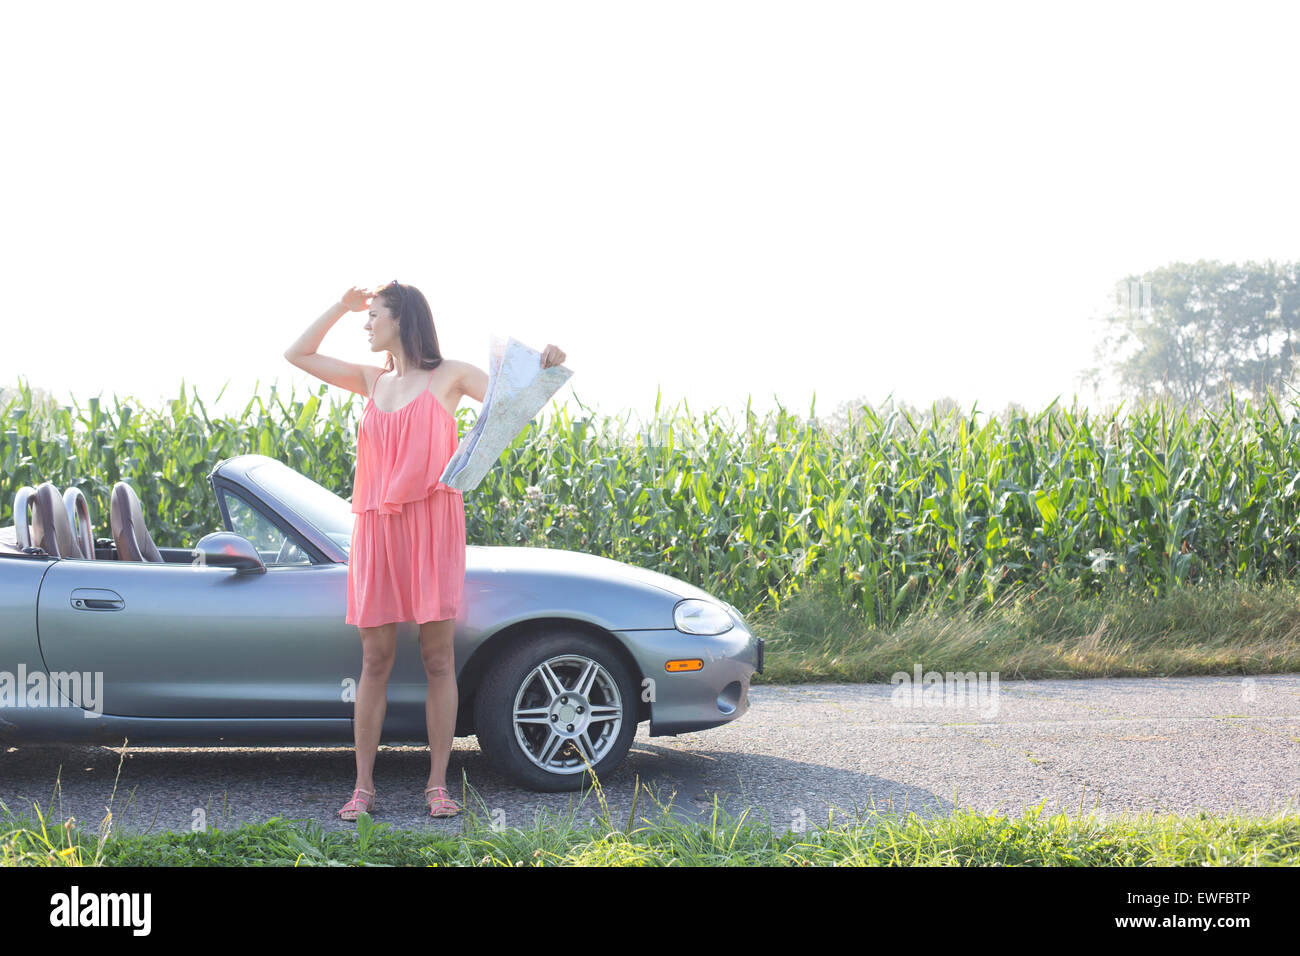 Full length of woman shielding eyes while holding map by convertible - Stock Image